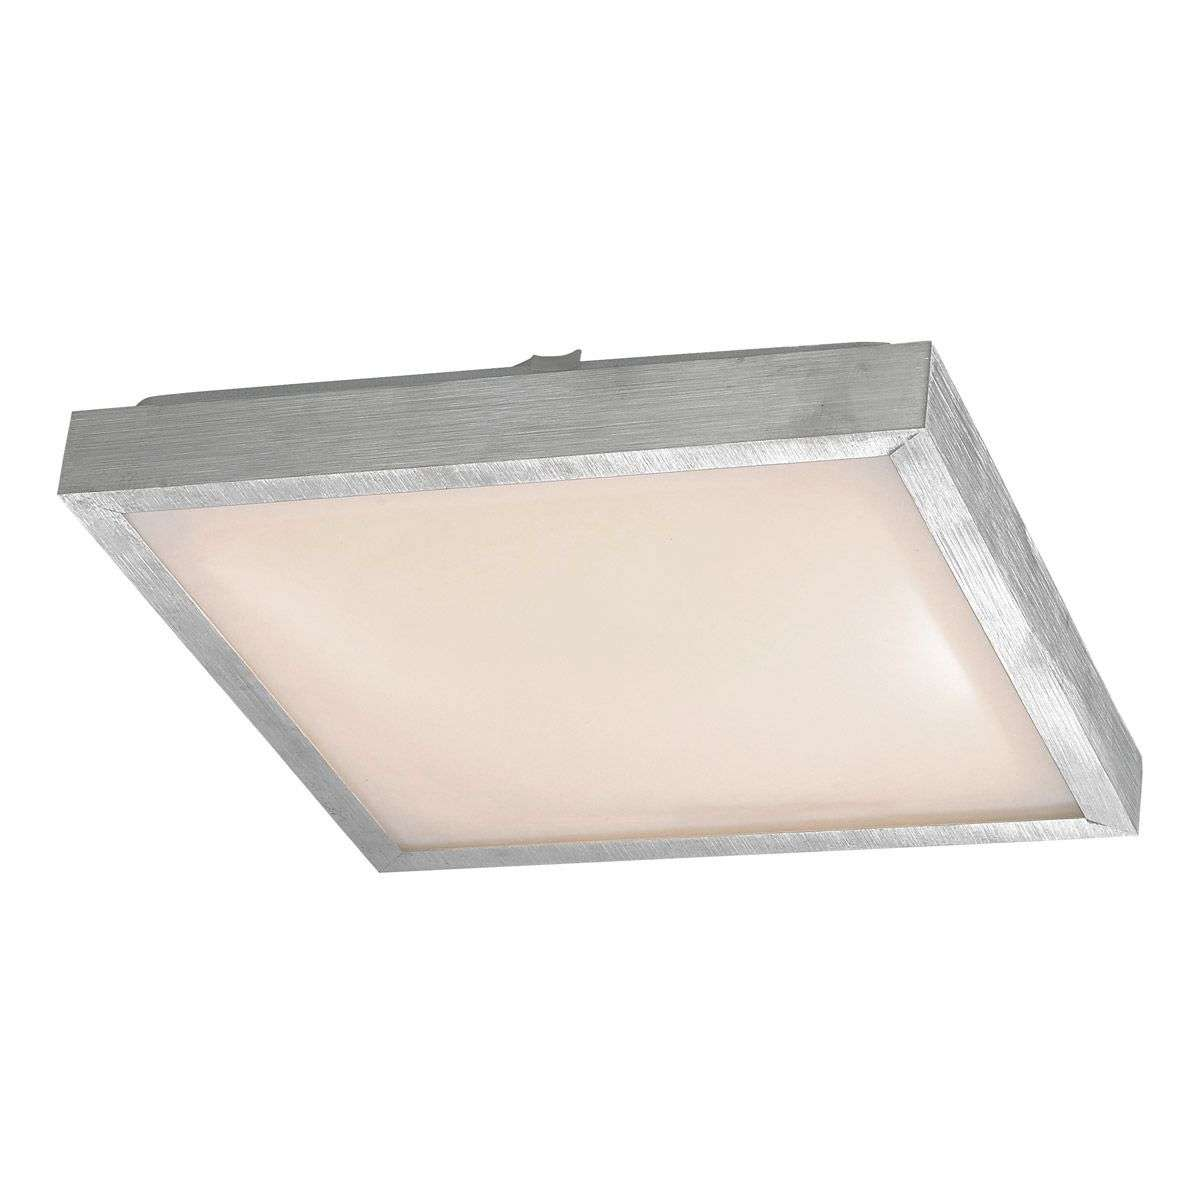 Square milano led bathroom ceiling light ip44 lights square milano led bathroom ceiling light ip44 aloadofball Image collections